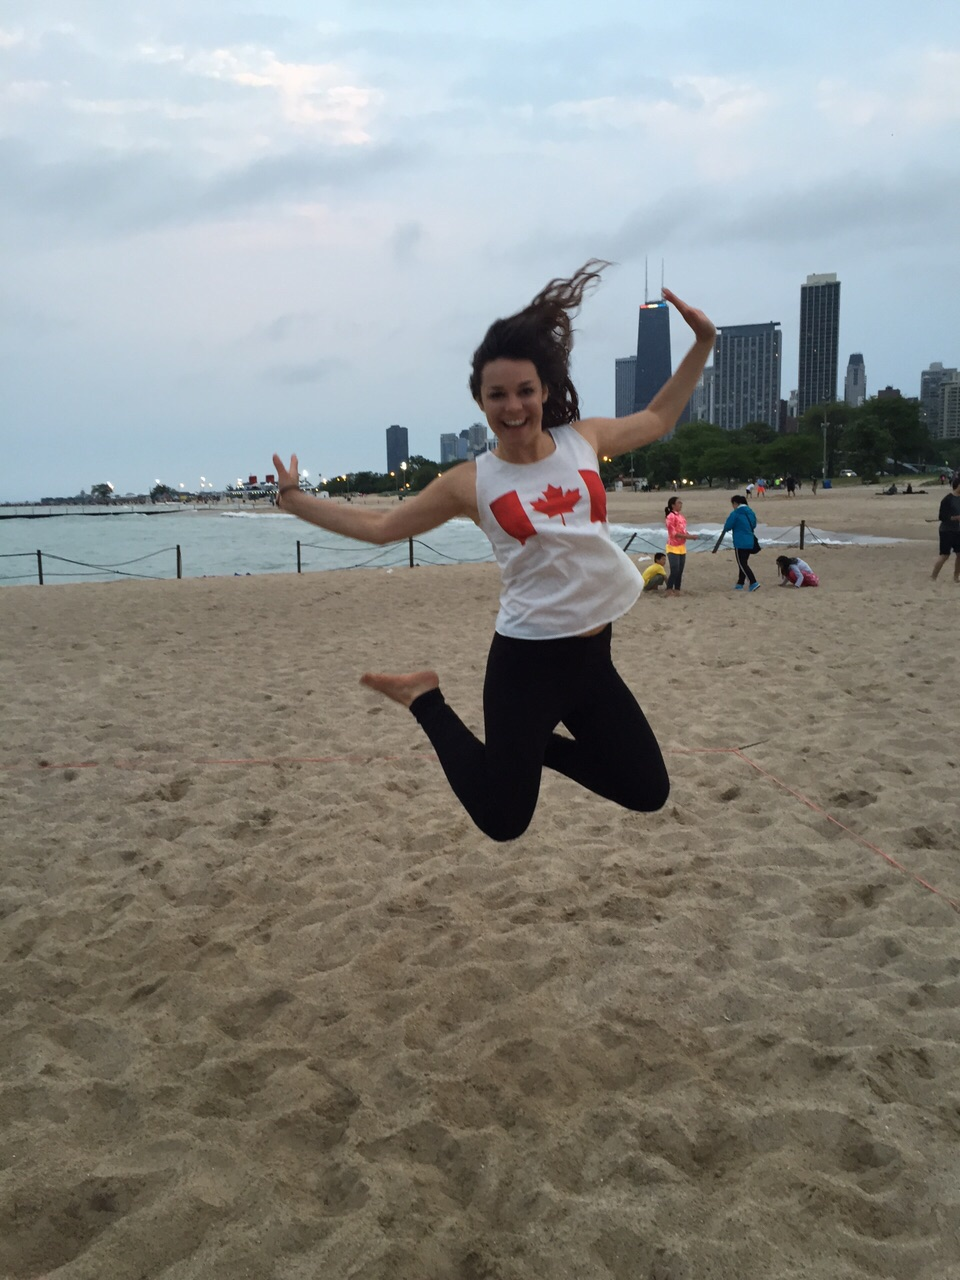 Camille celebrating Canada Day on the beach in Chicago.